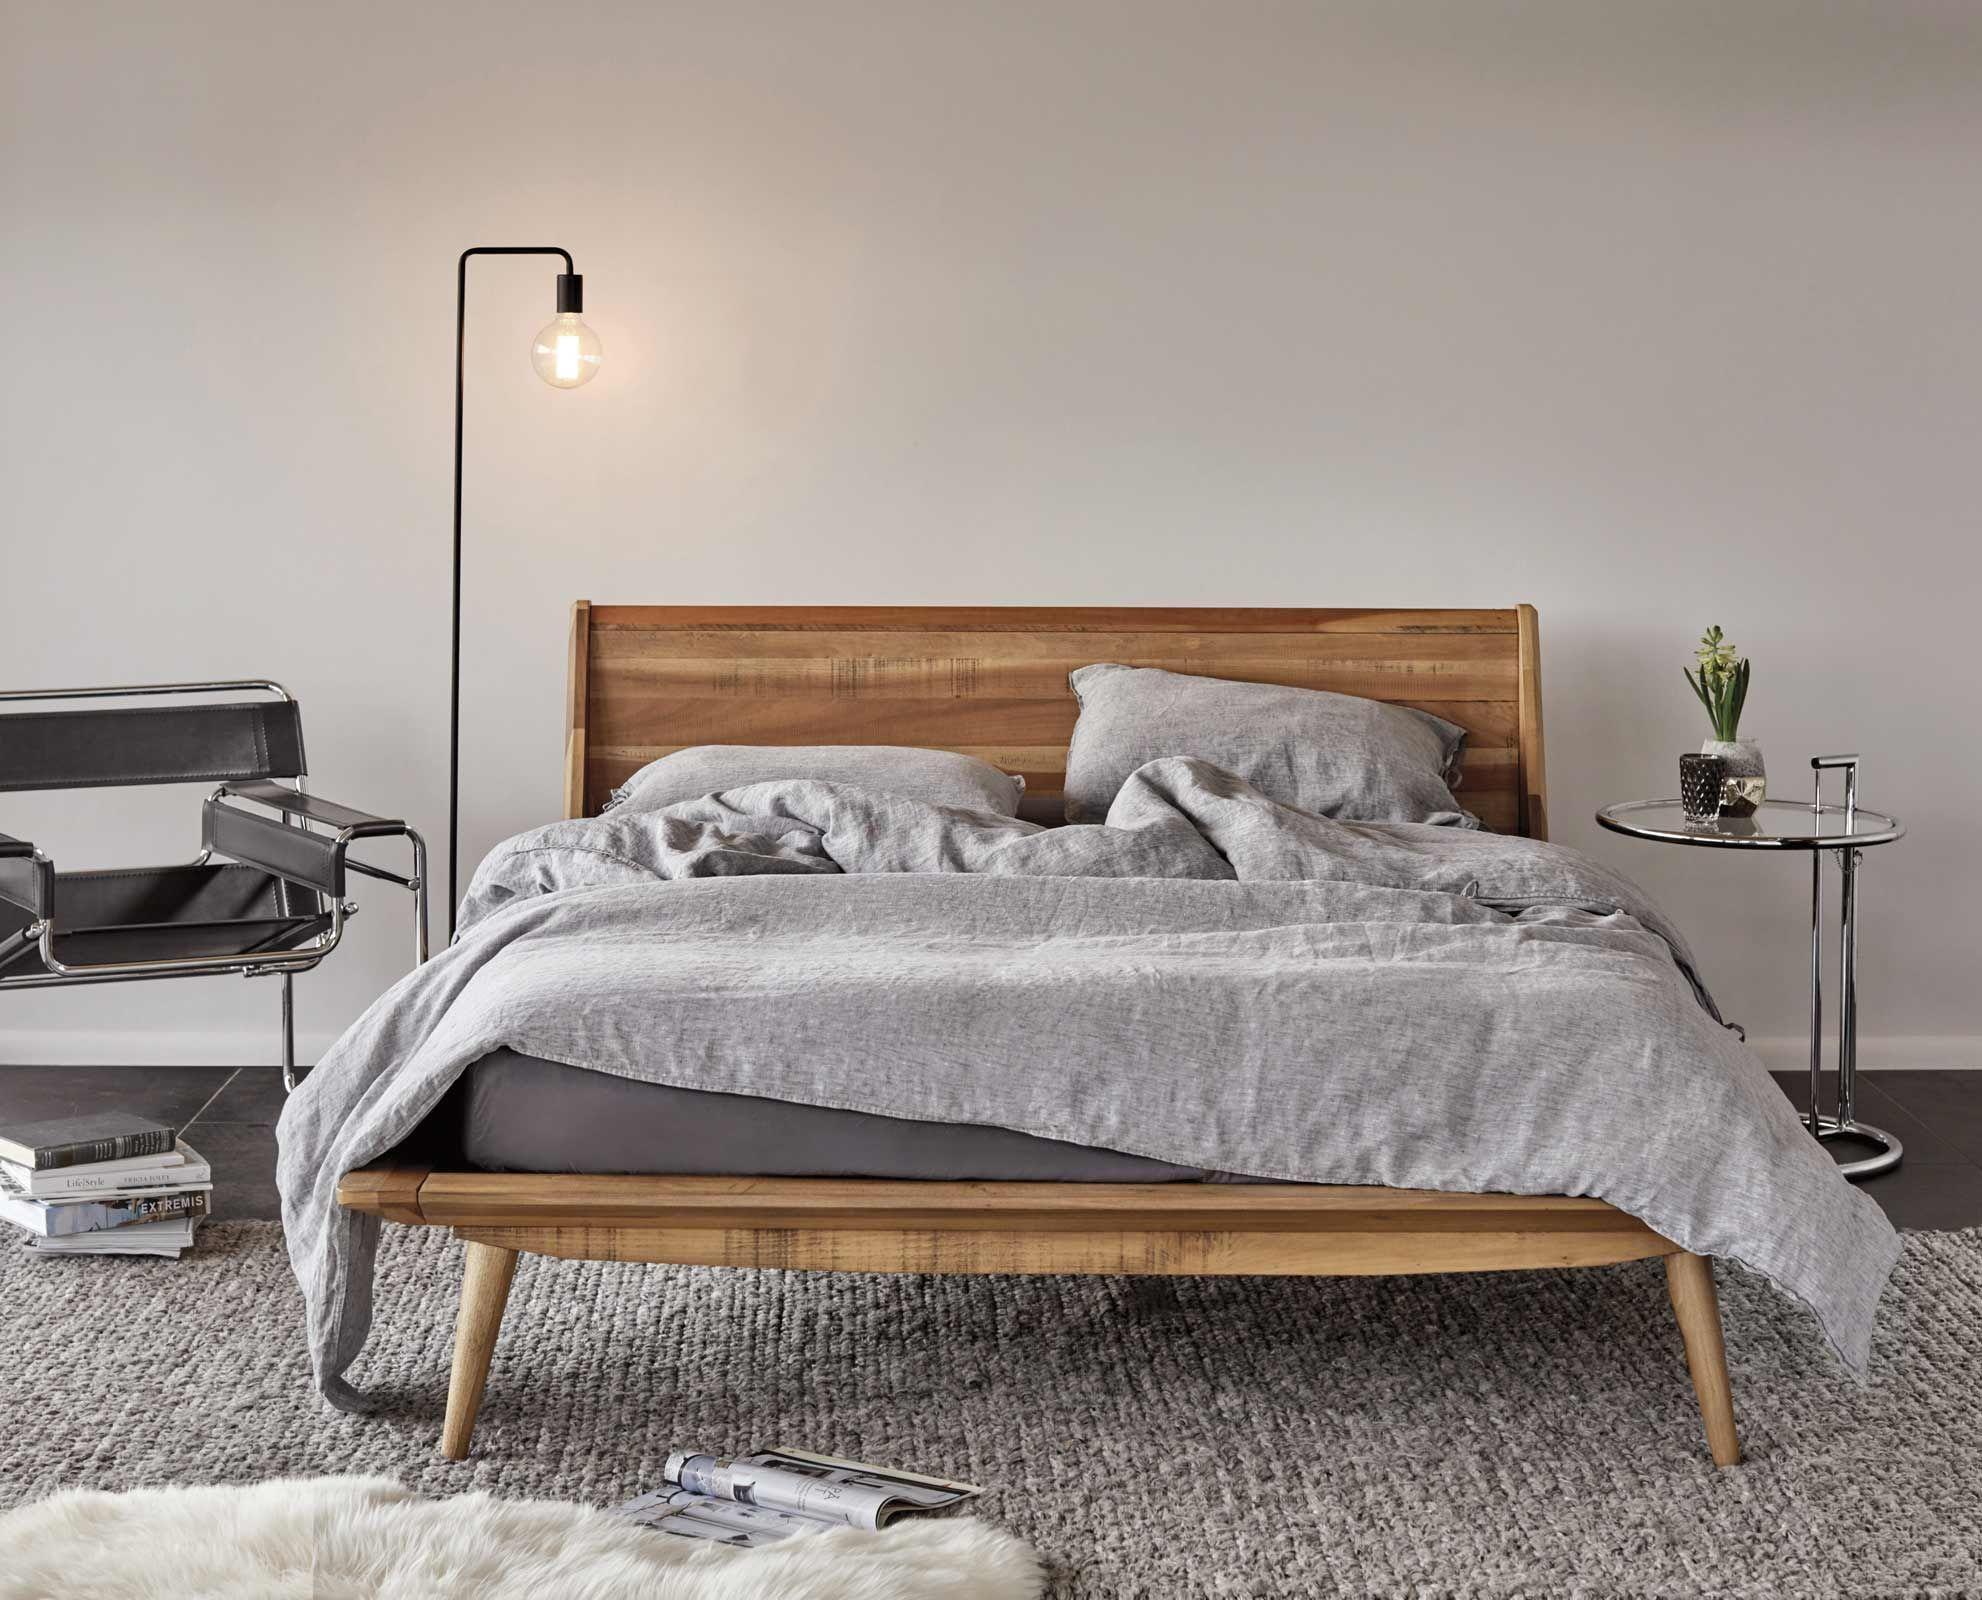 dania the nordic inspired bolig bed is crafted from solid poplar